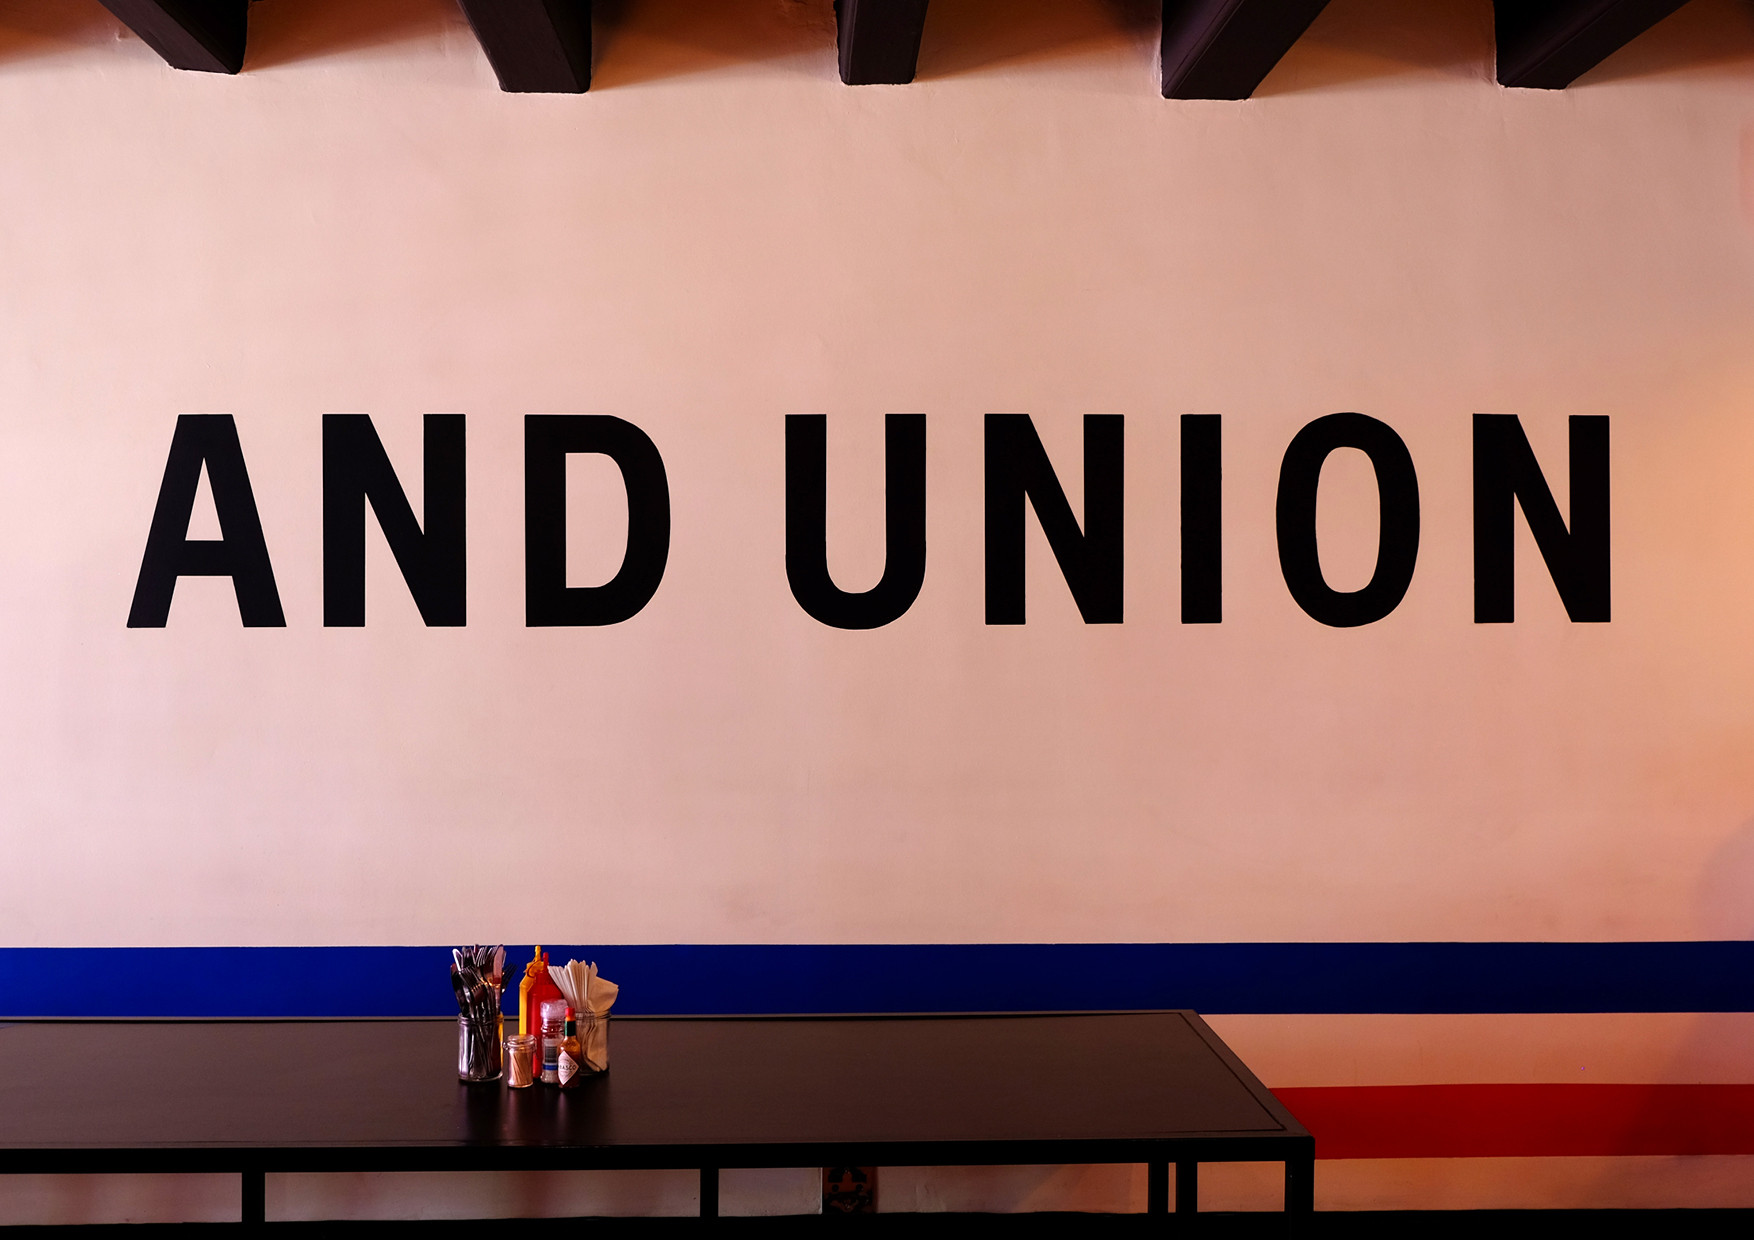 And Union